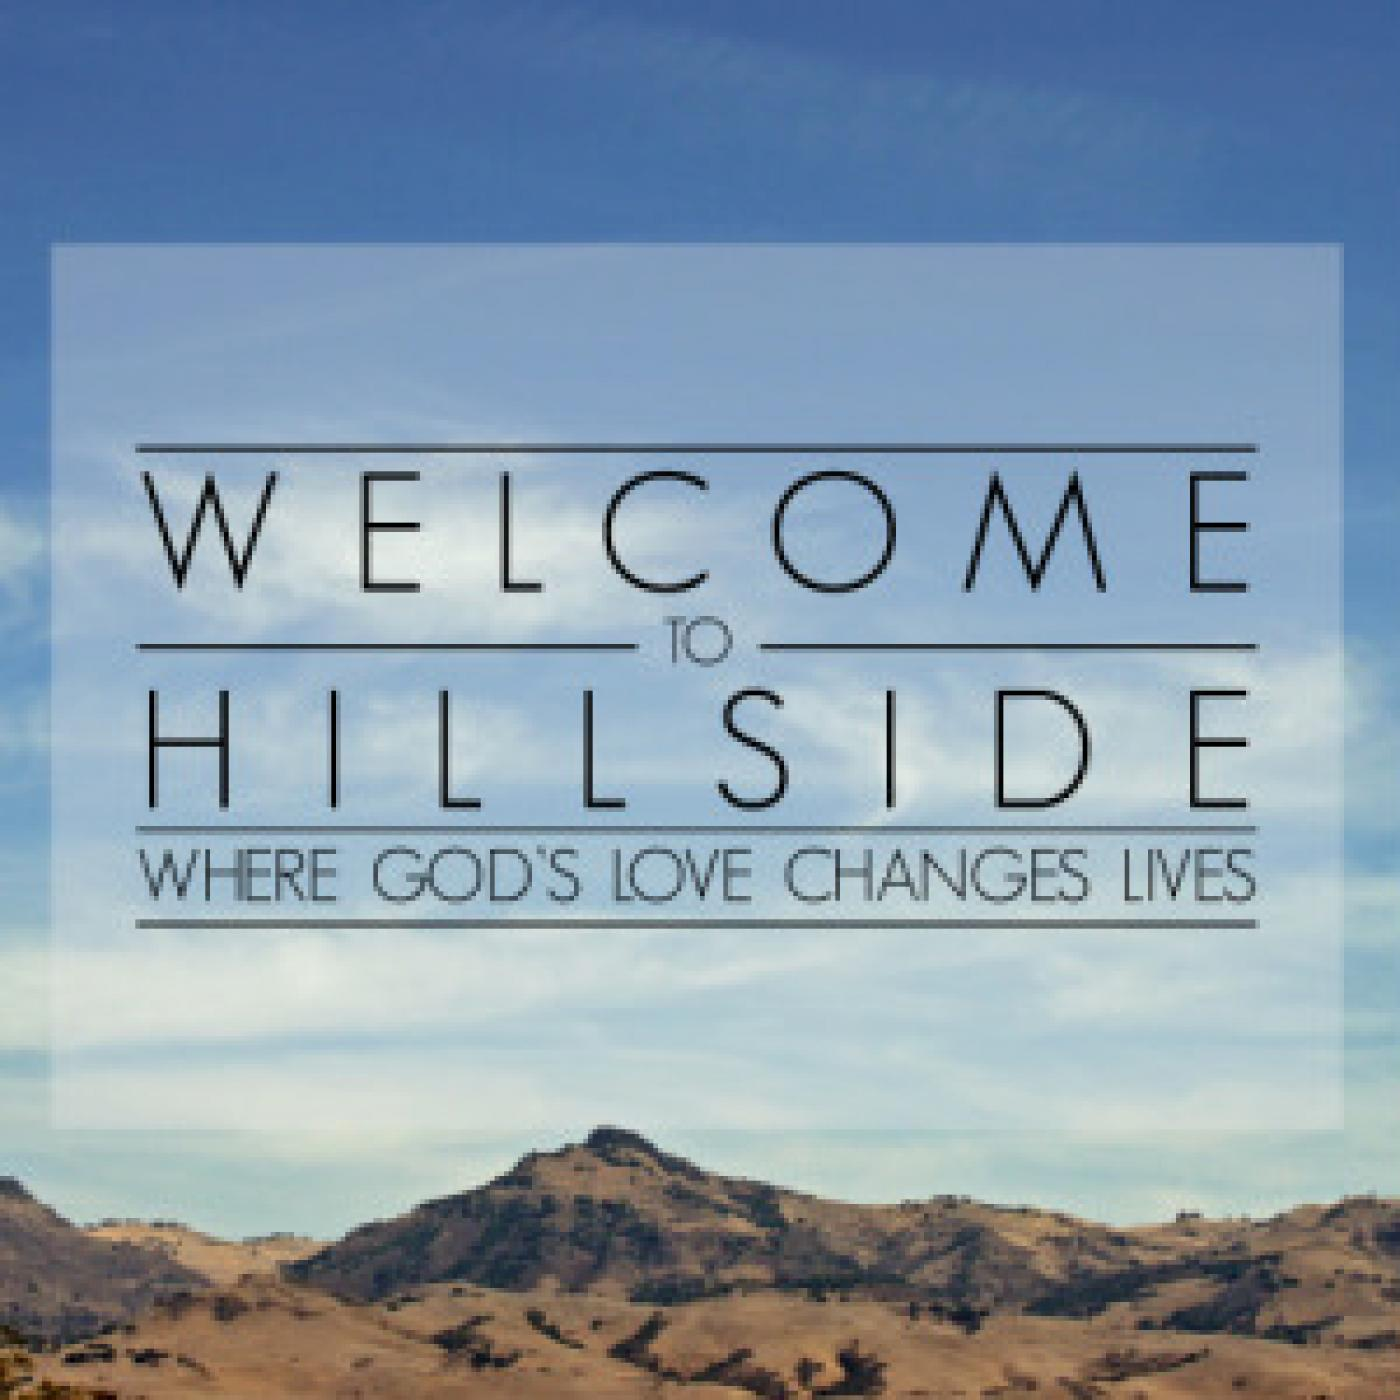 Hillside Christian Fellowship